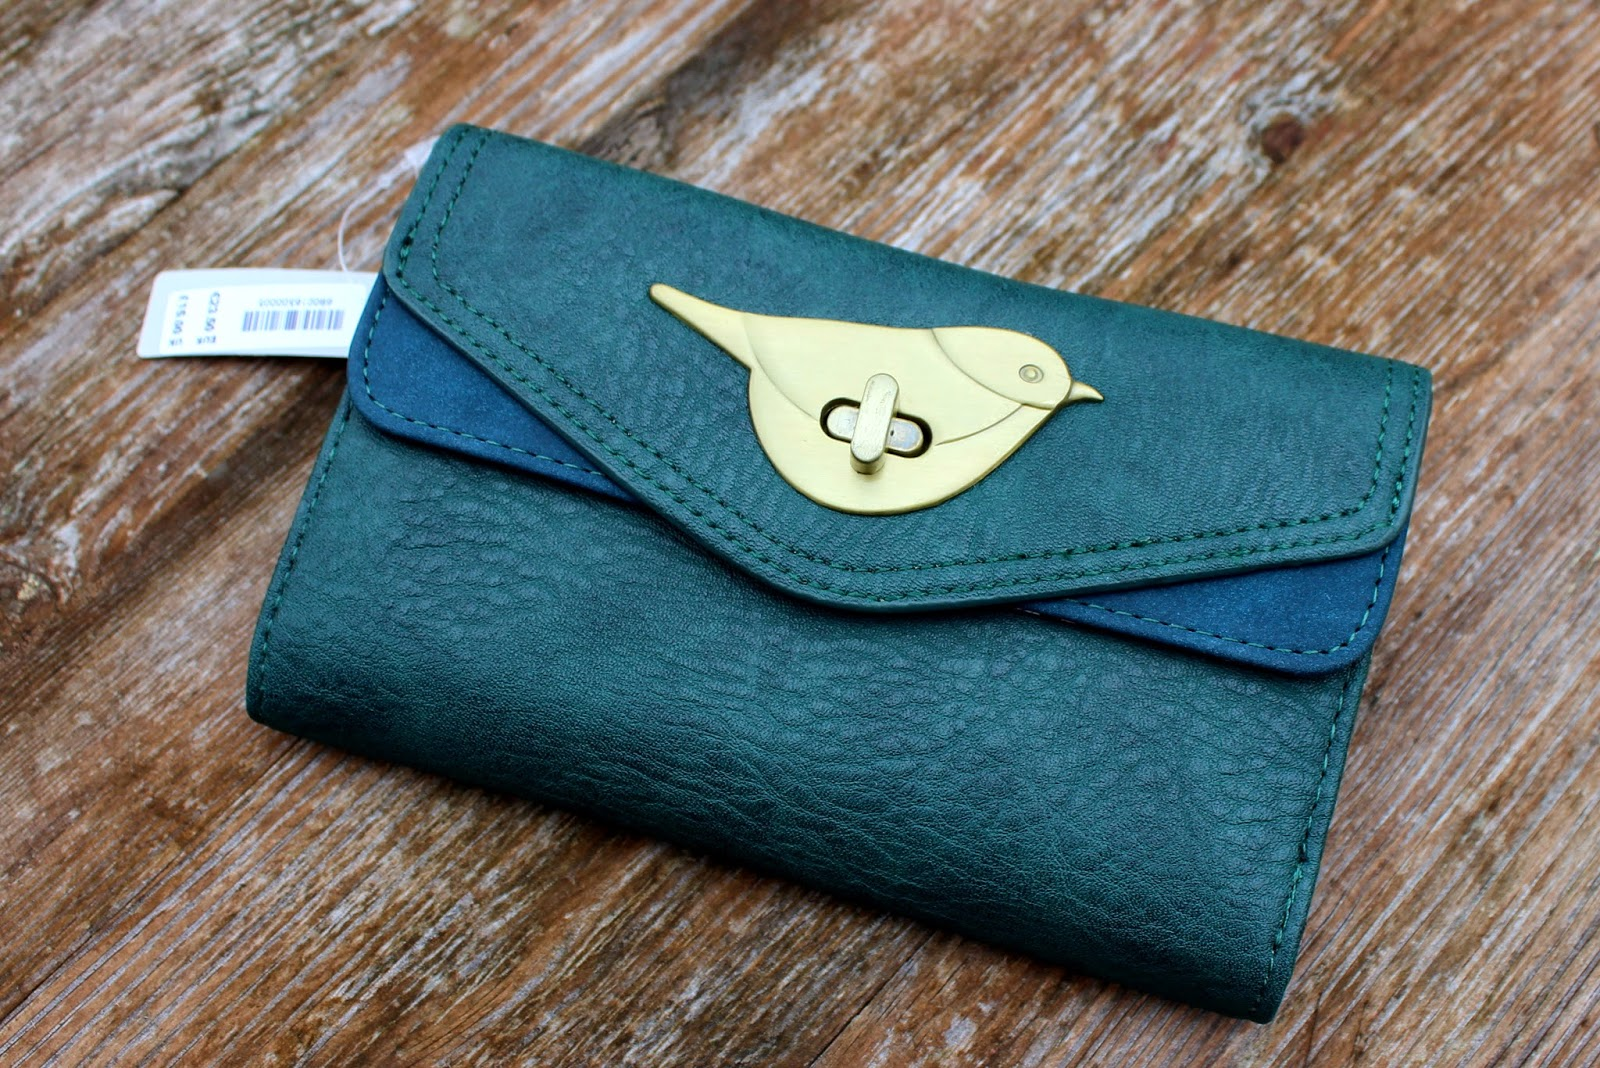 UK Lifestyle, Fashion & Beauty Blog: Accessorize - Chester Chubby Bird Wallet review